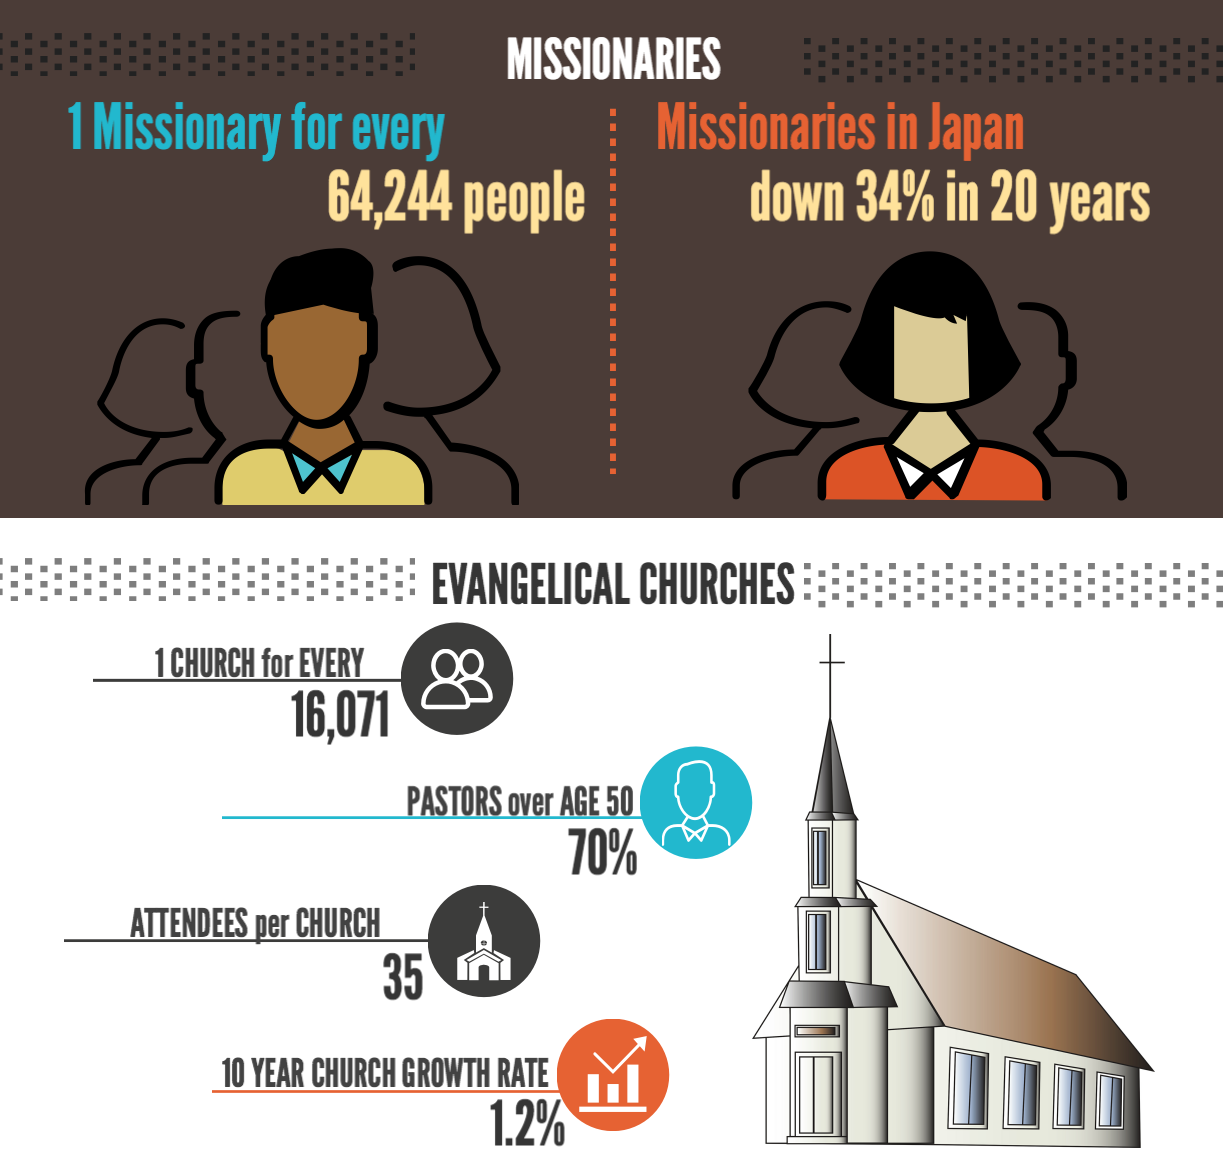 Partnering in the Gospel - We are excited to be on this journey, but we can not do it alone. It is only by having an amazing prayer and financial team that we are able to be God's representative in Japan. Would you prayerfully consider partnering with us financially as we bring the gospel of Jesus Christ to Japan ? If you believe in this work and want to be a part of our team, click below to Join the Team. You'll be taken to SIM where you will be able to partner with us in His work, building His Kingdom.(And just so you know, we will NEVER, EVER sell or give out your email address to anyone without your permission!)